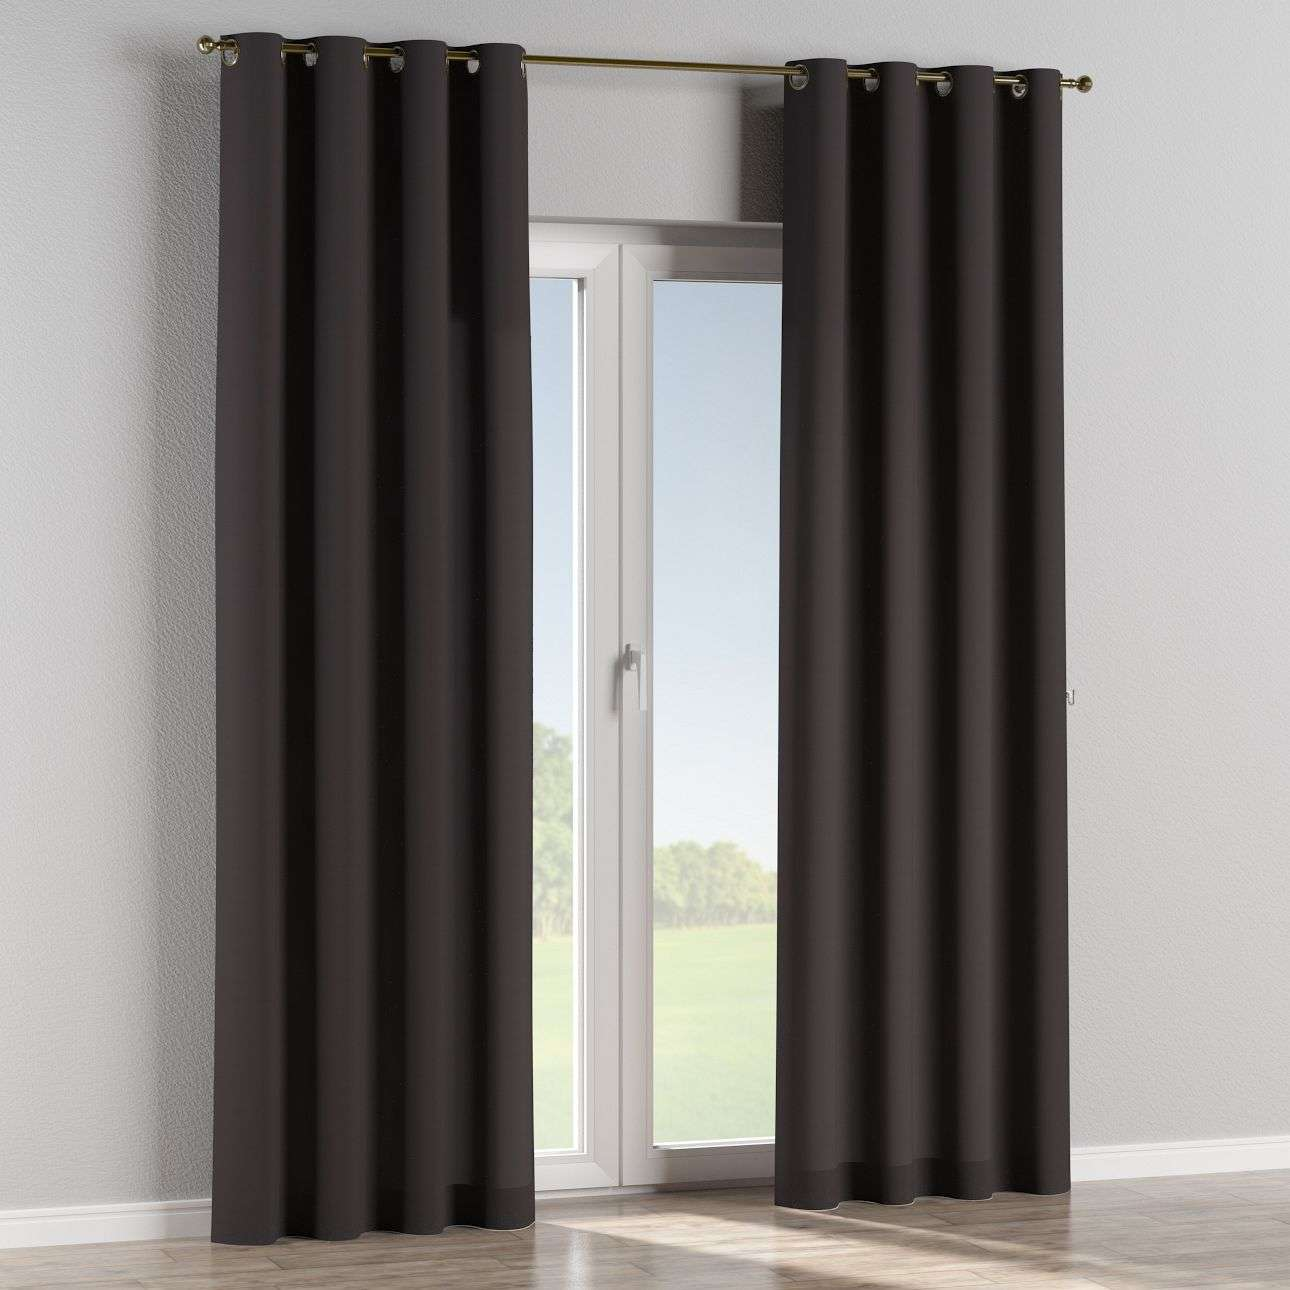 Eyelet curtains in collection Panama Cotton, fabric: 702-09